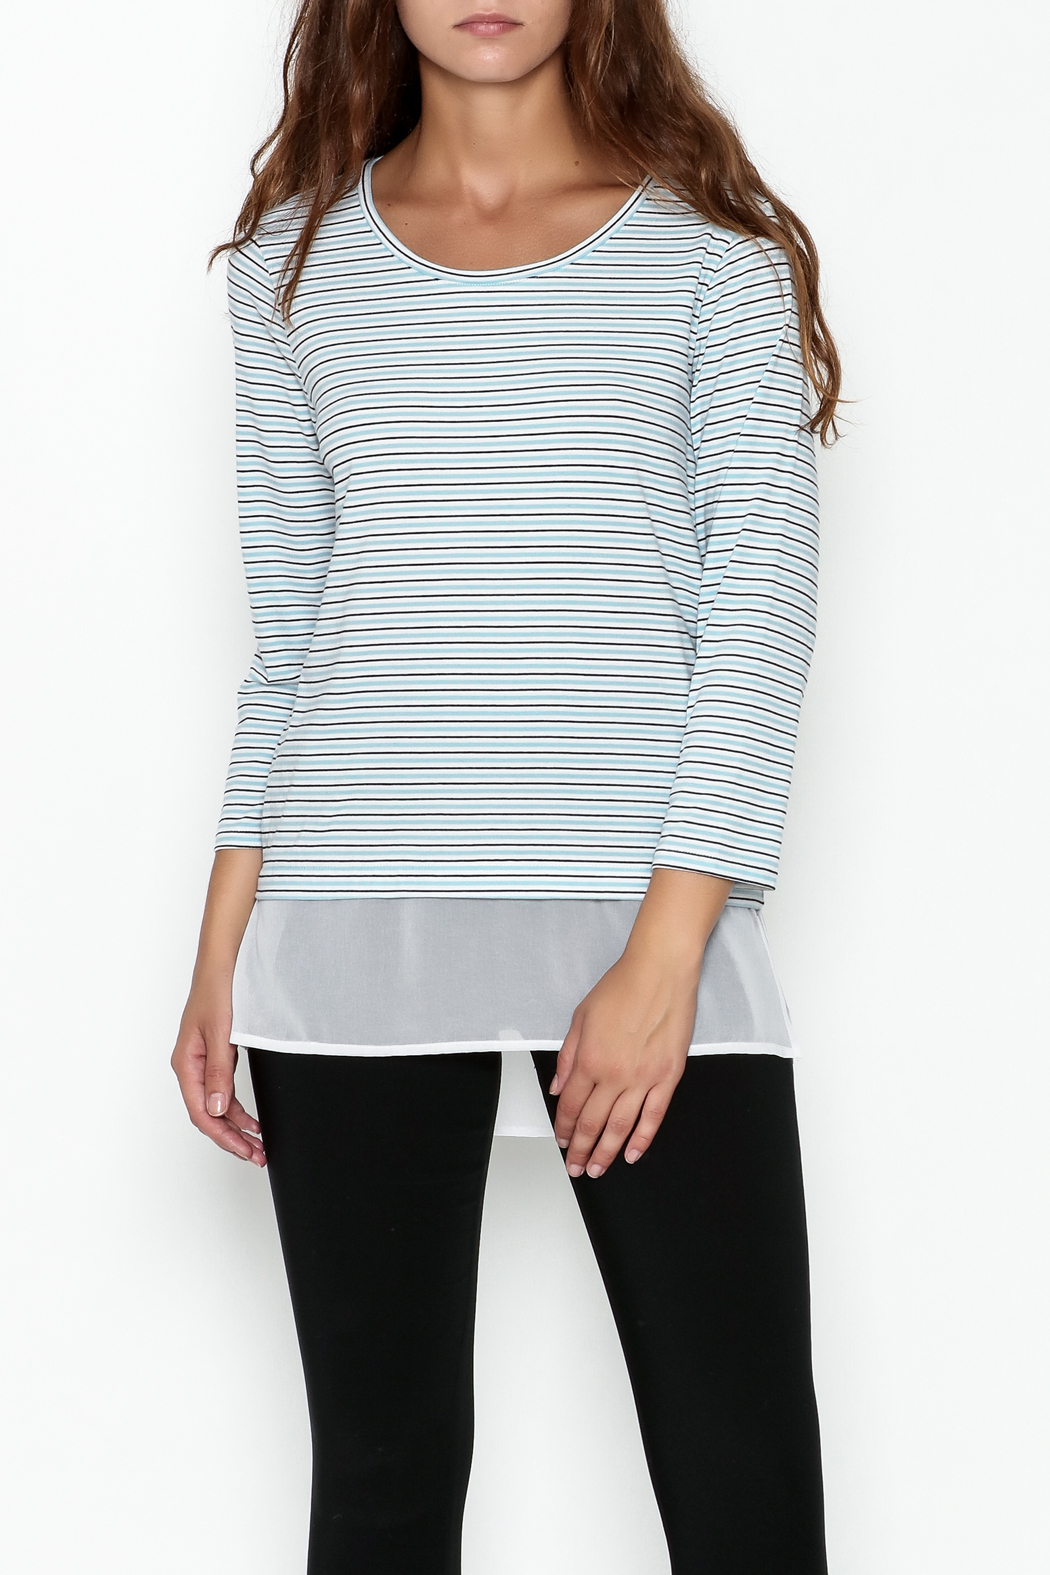 Tyler Boe Pinstripe Crew Top - Front Cropped Image